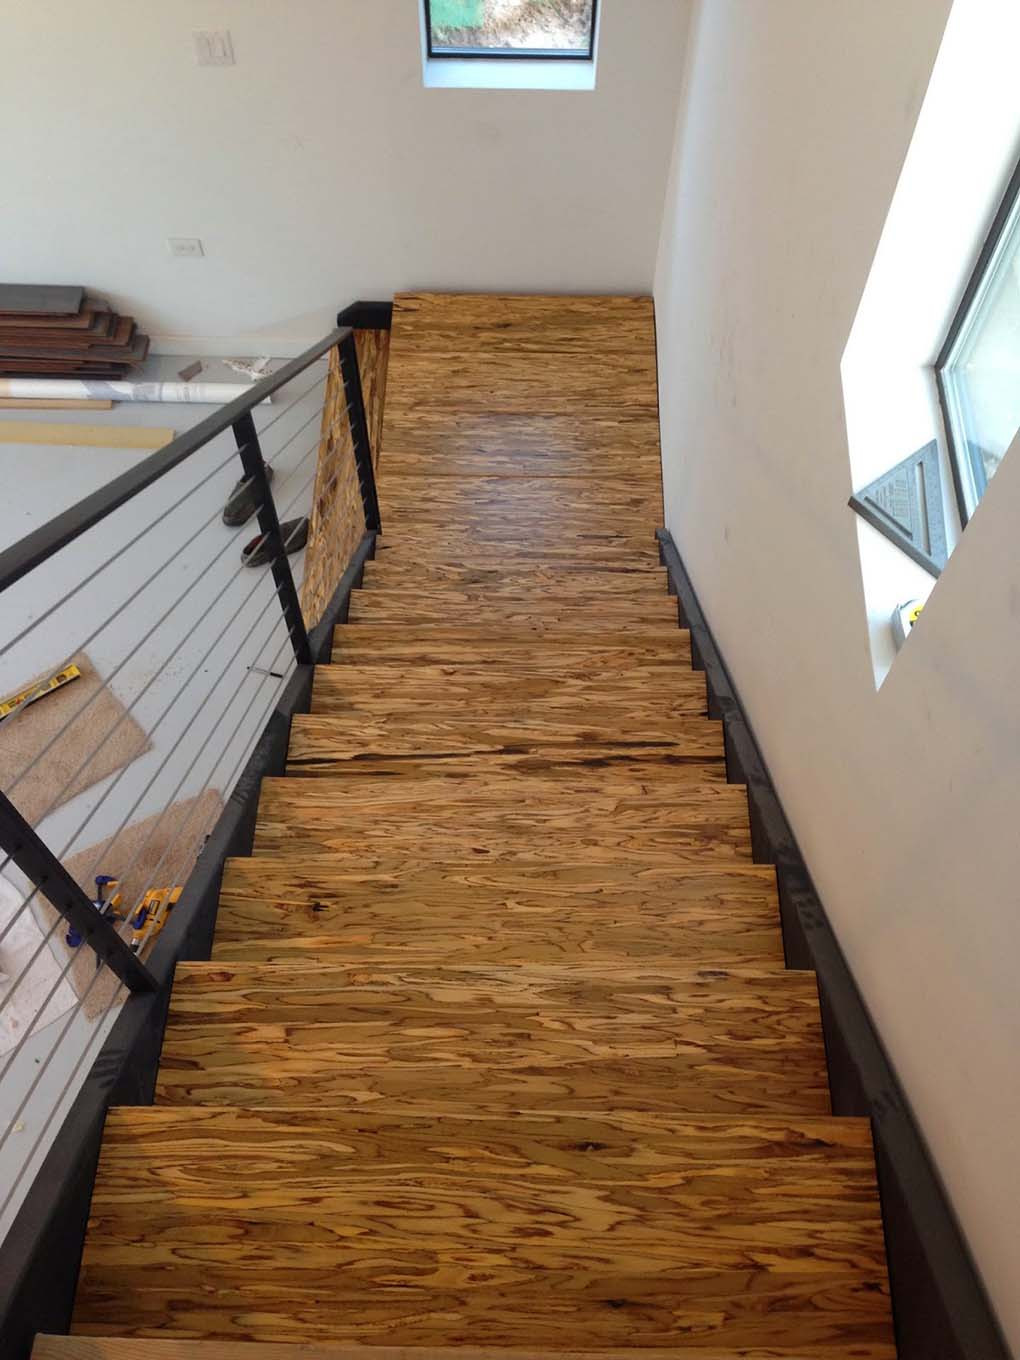 Best ideas about Types Of Staircase . Save or Pin Types of Staircase Designs Now.